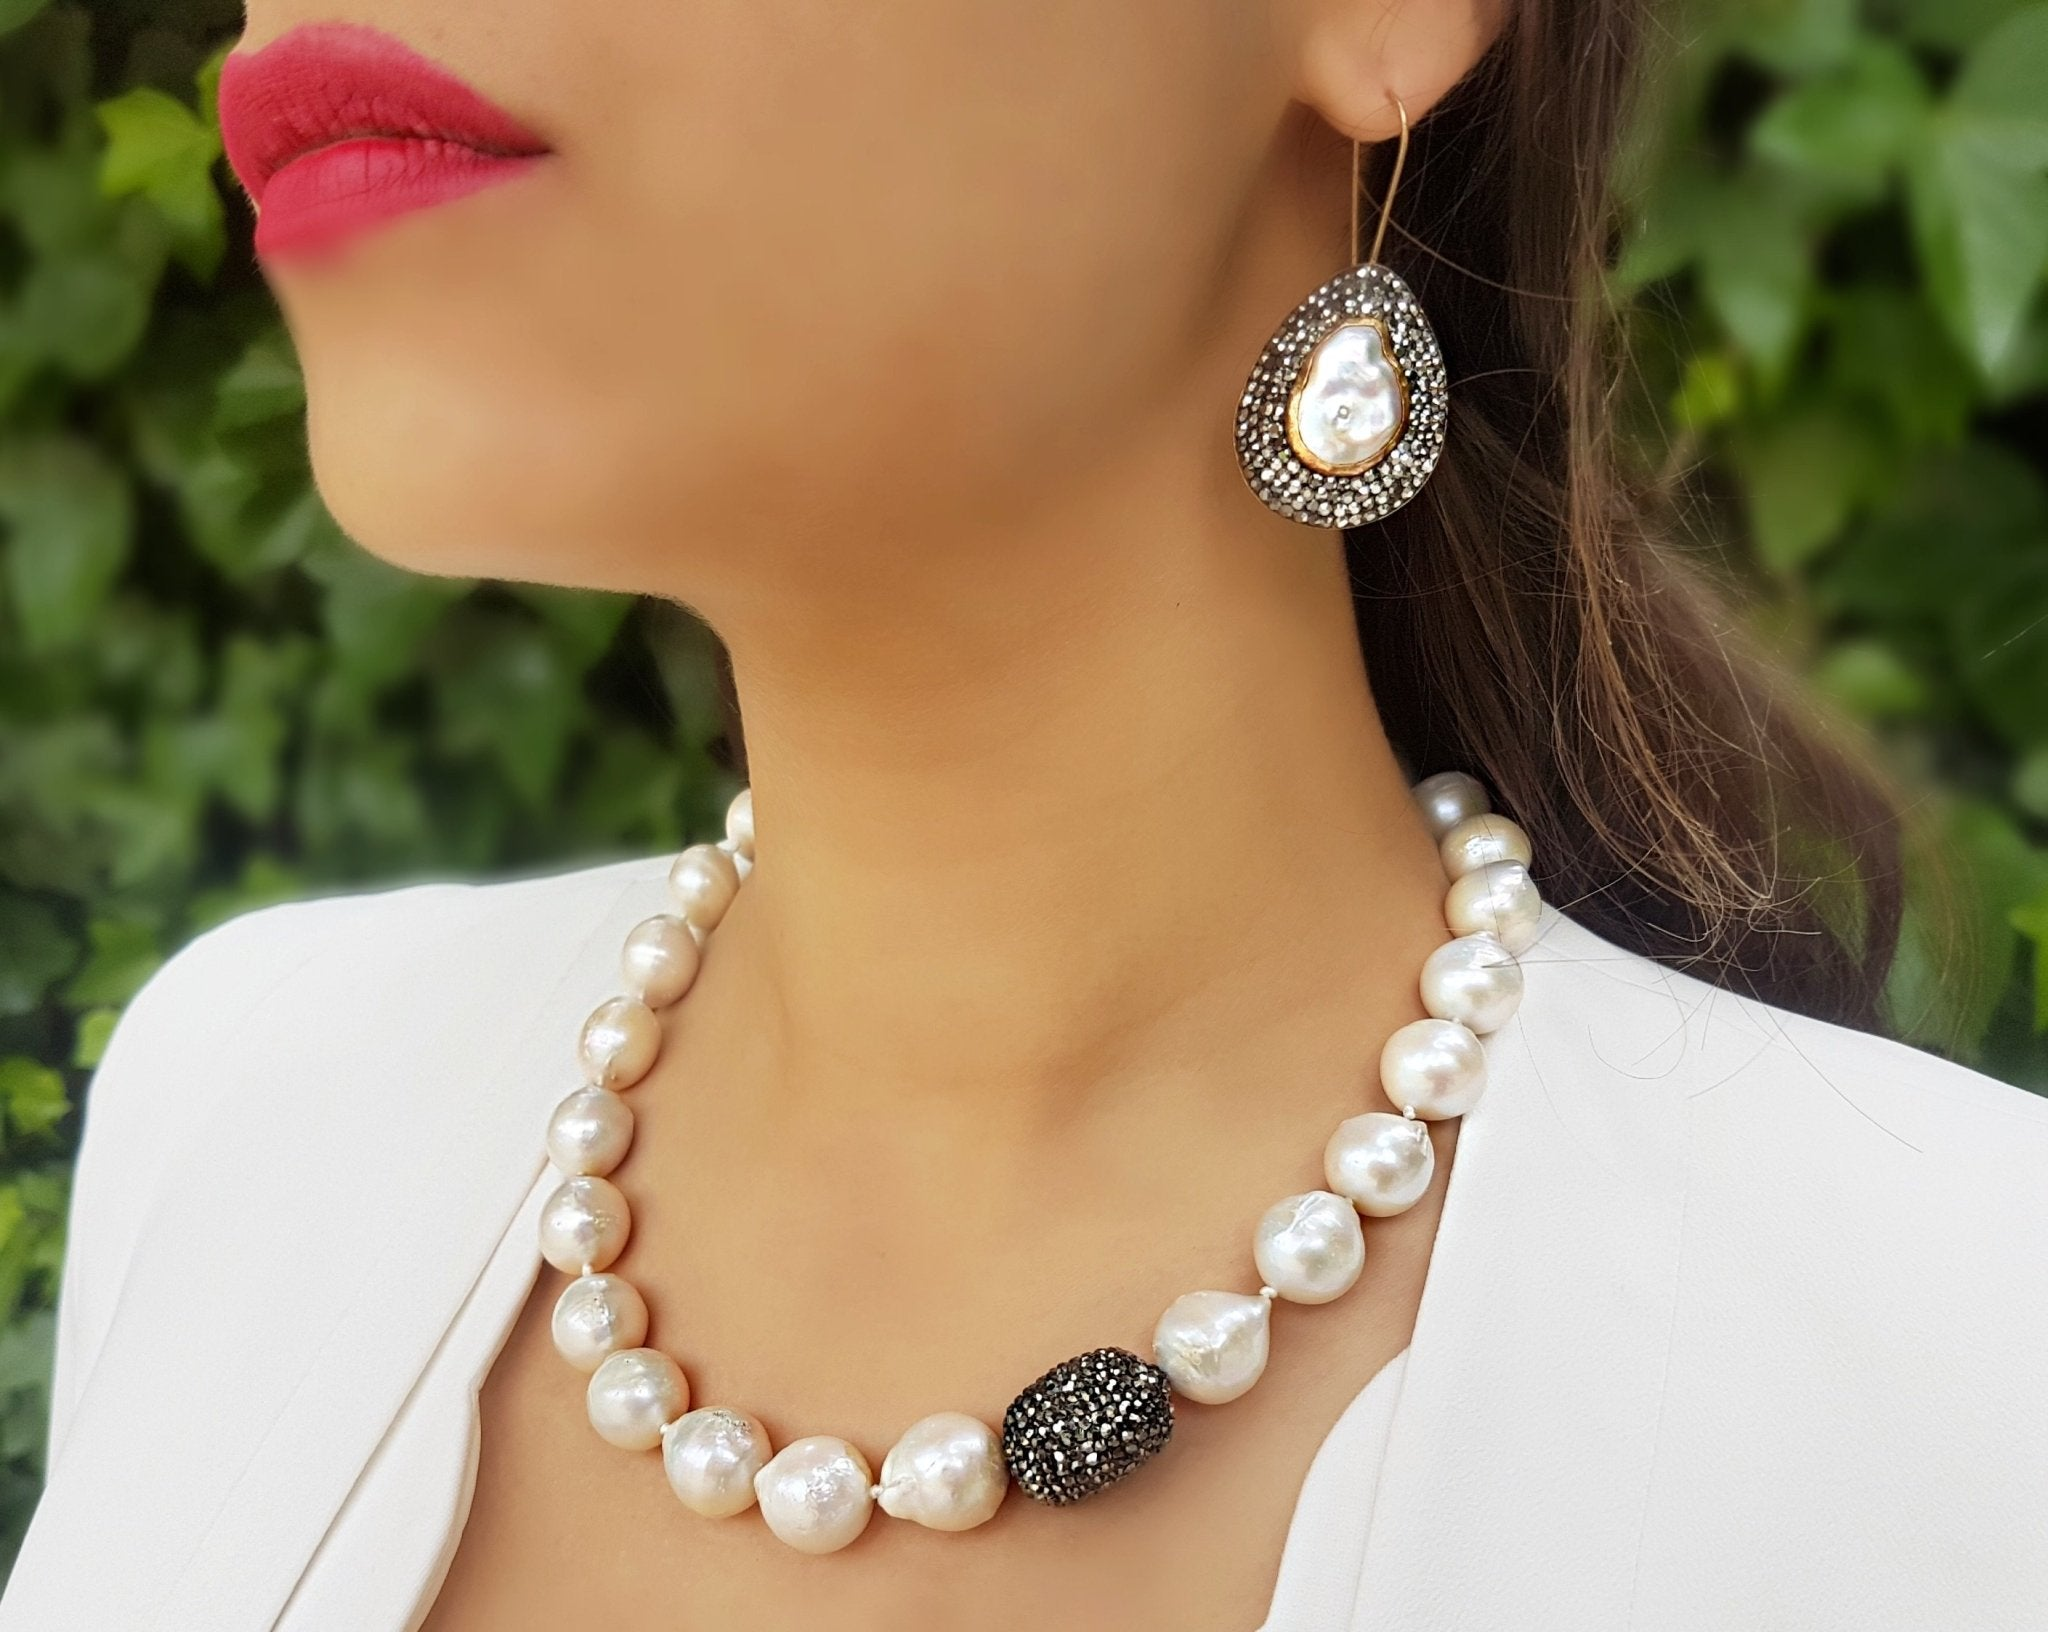 MONROE PEARL NECKLACE - The Clothing LoungeChakarr